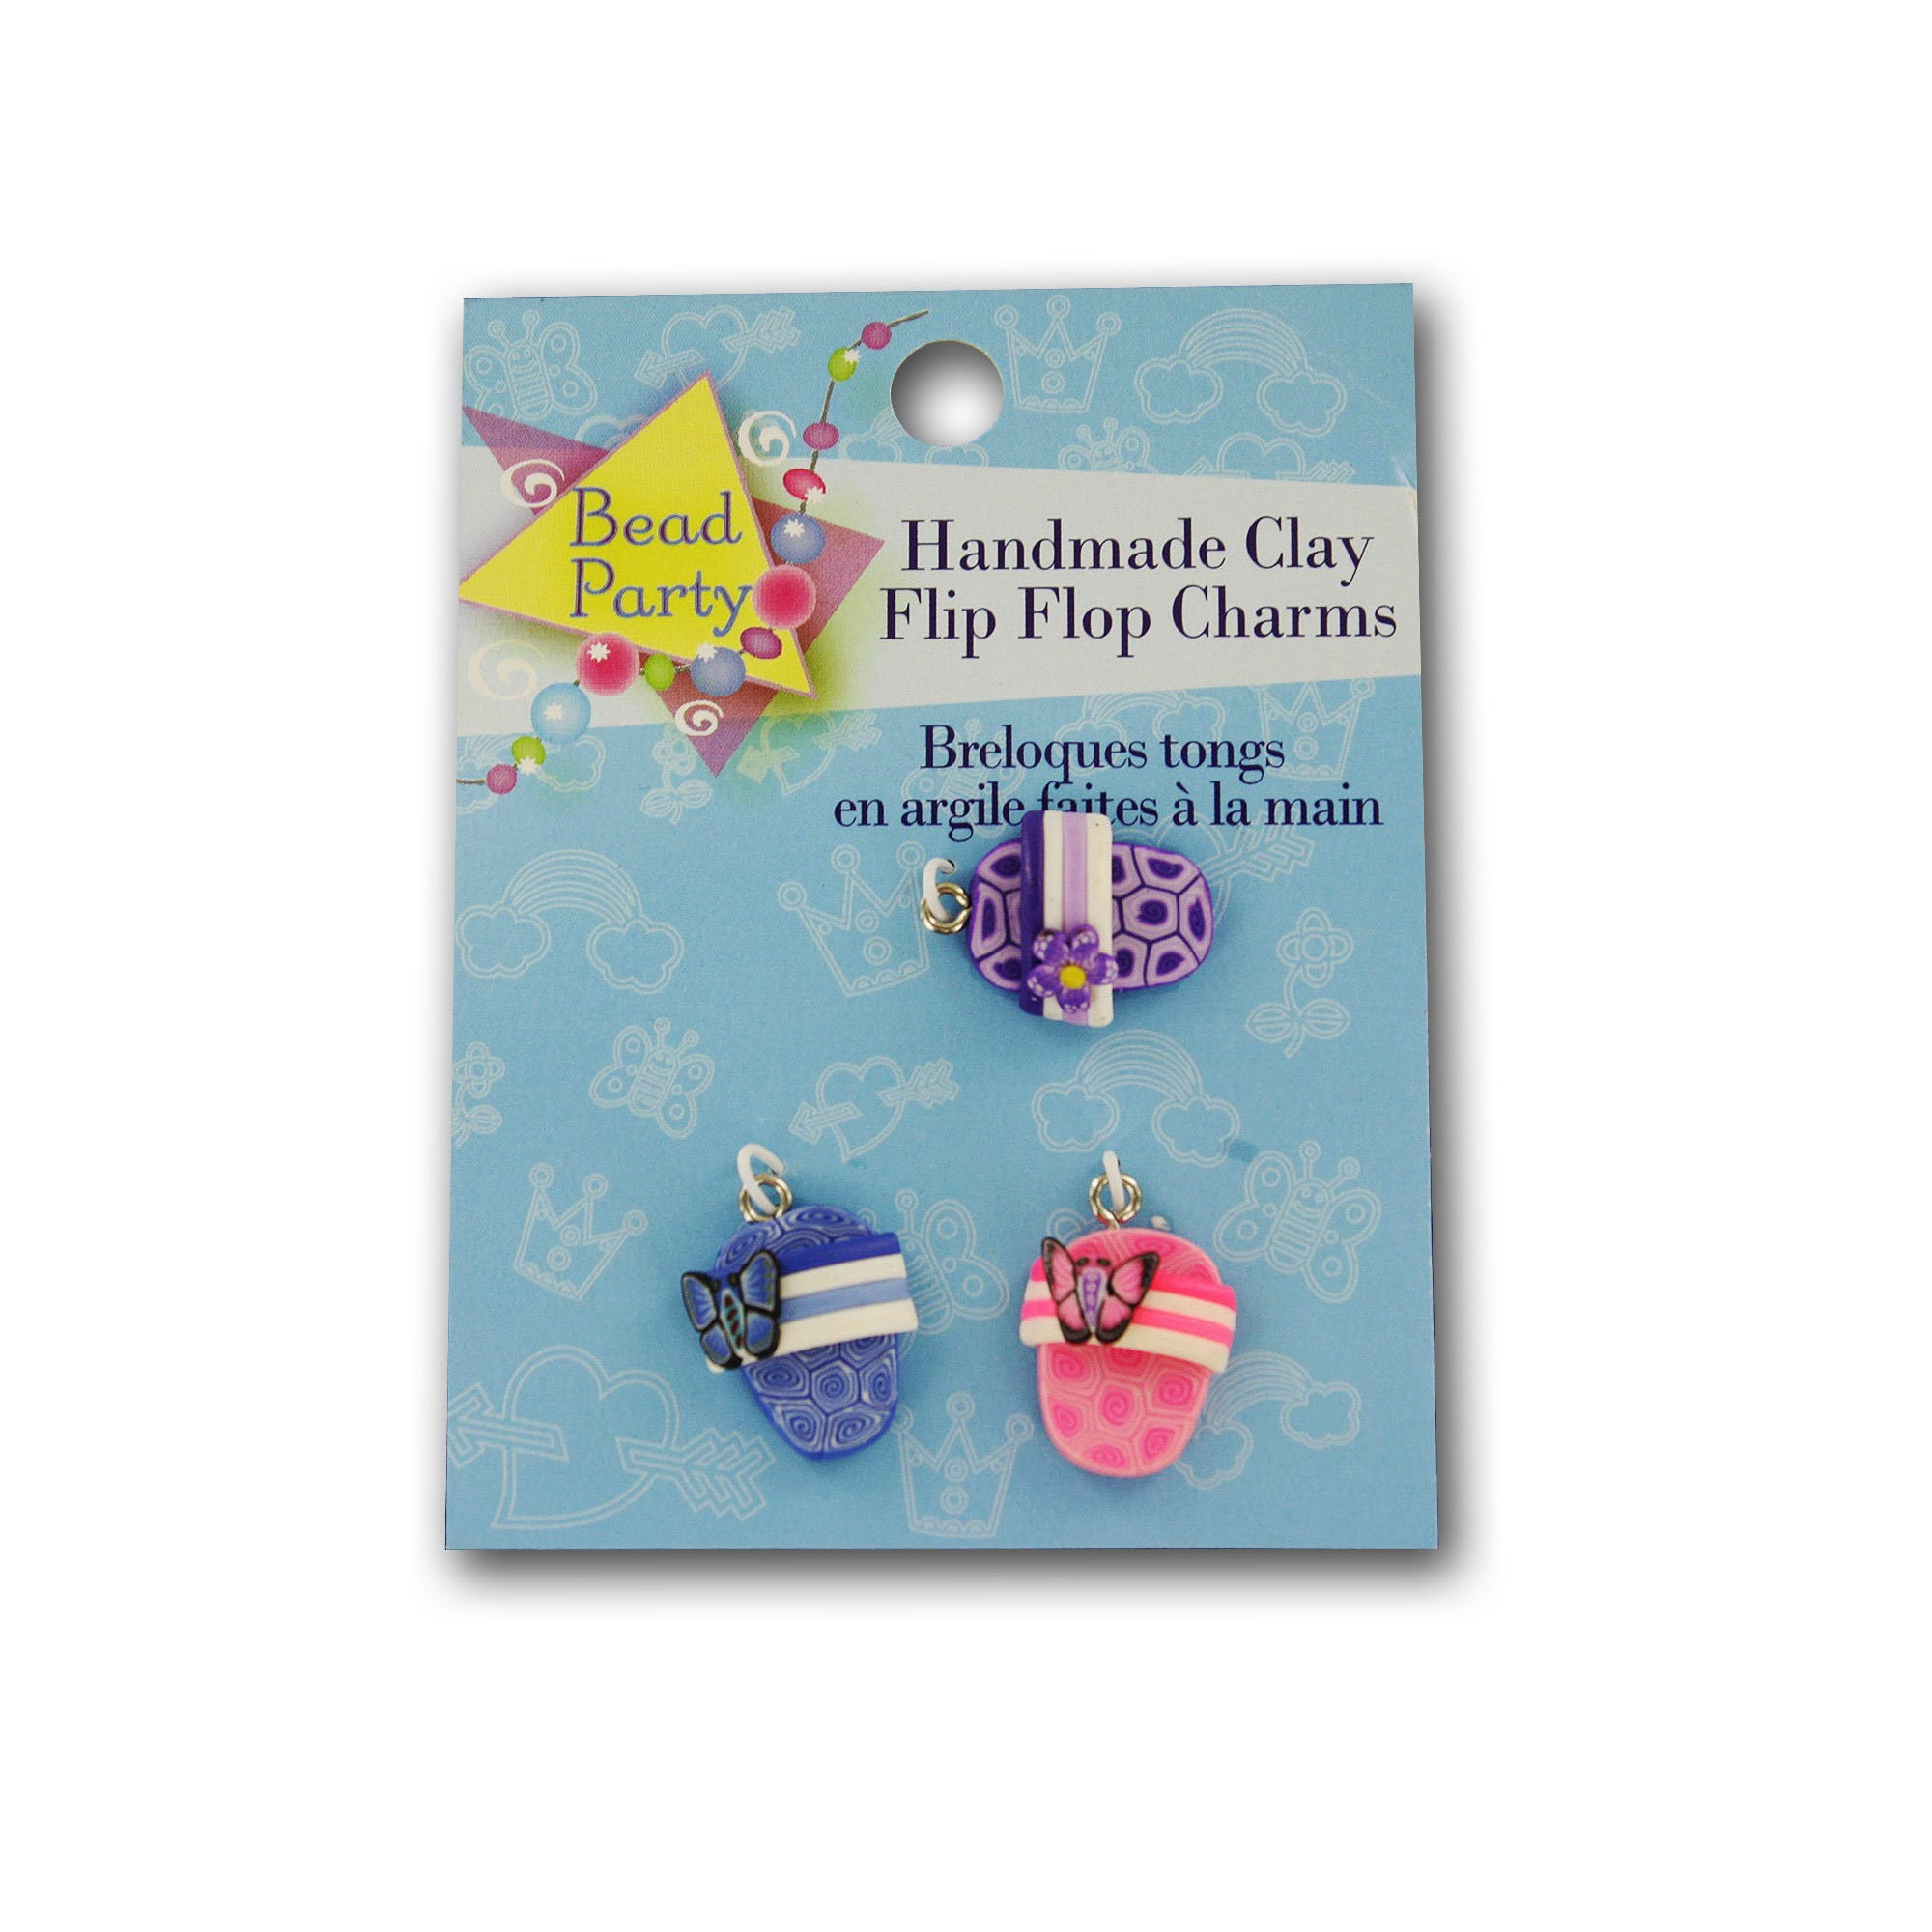 Clay Flip Flop CHARMs- Qty 24